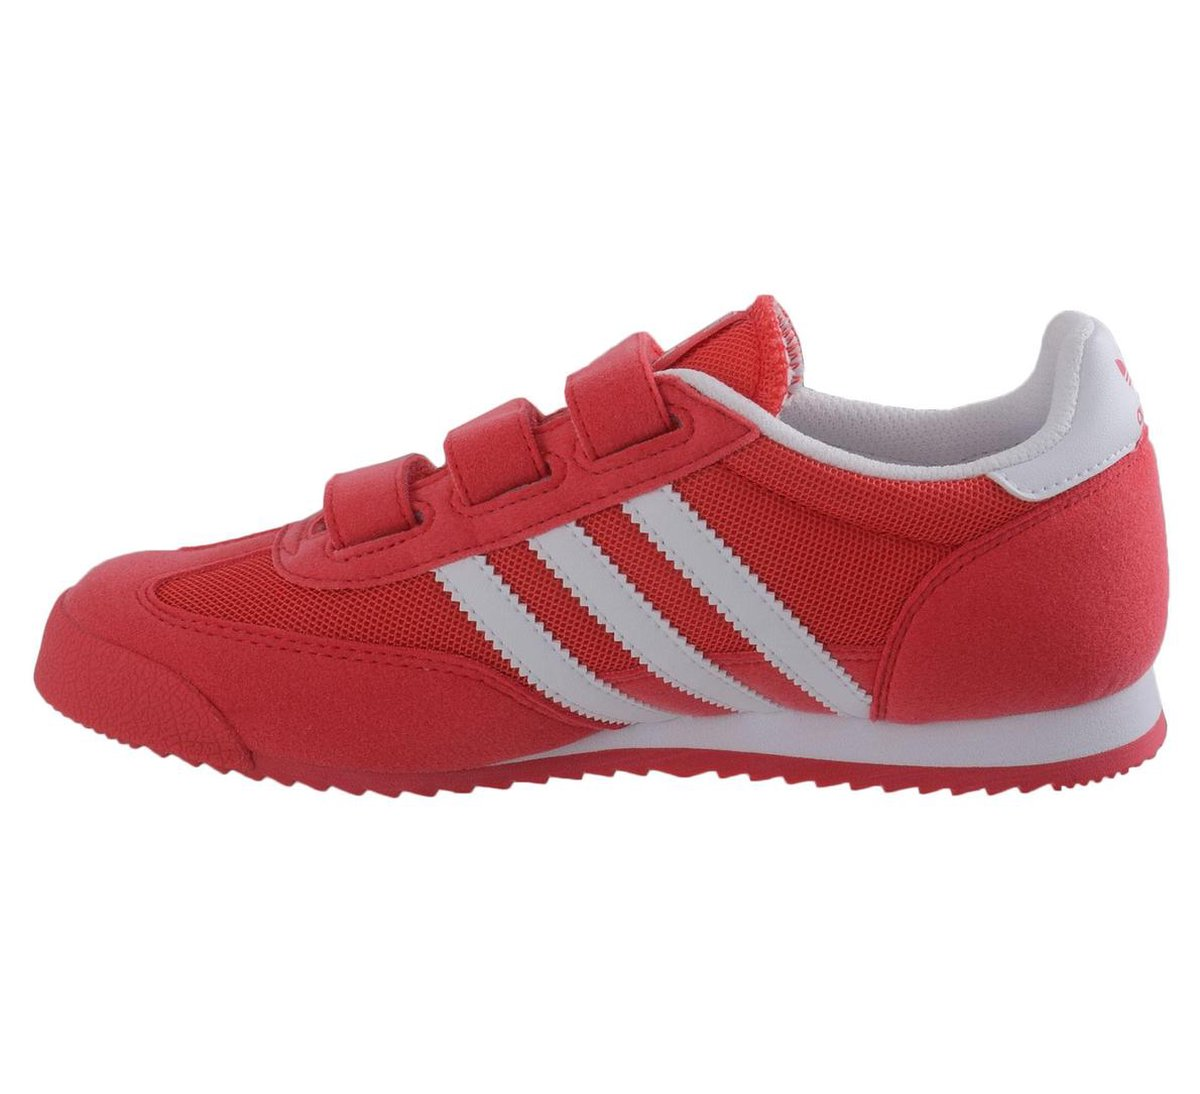 adidas dragon kinder 36